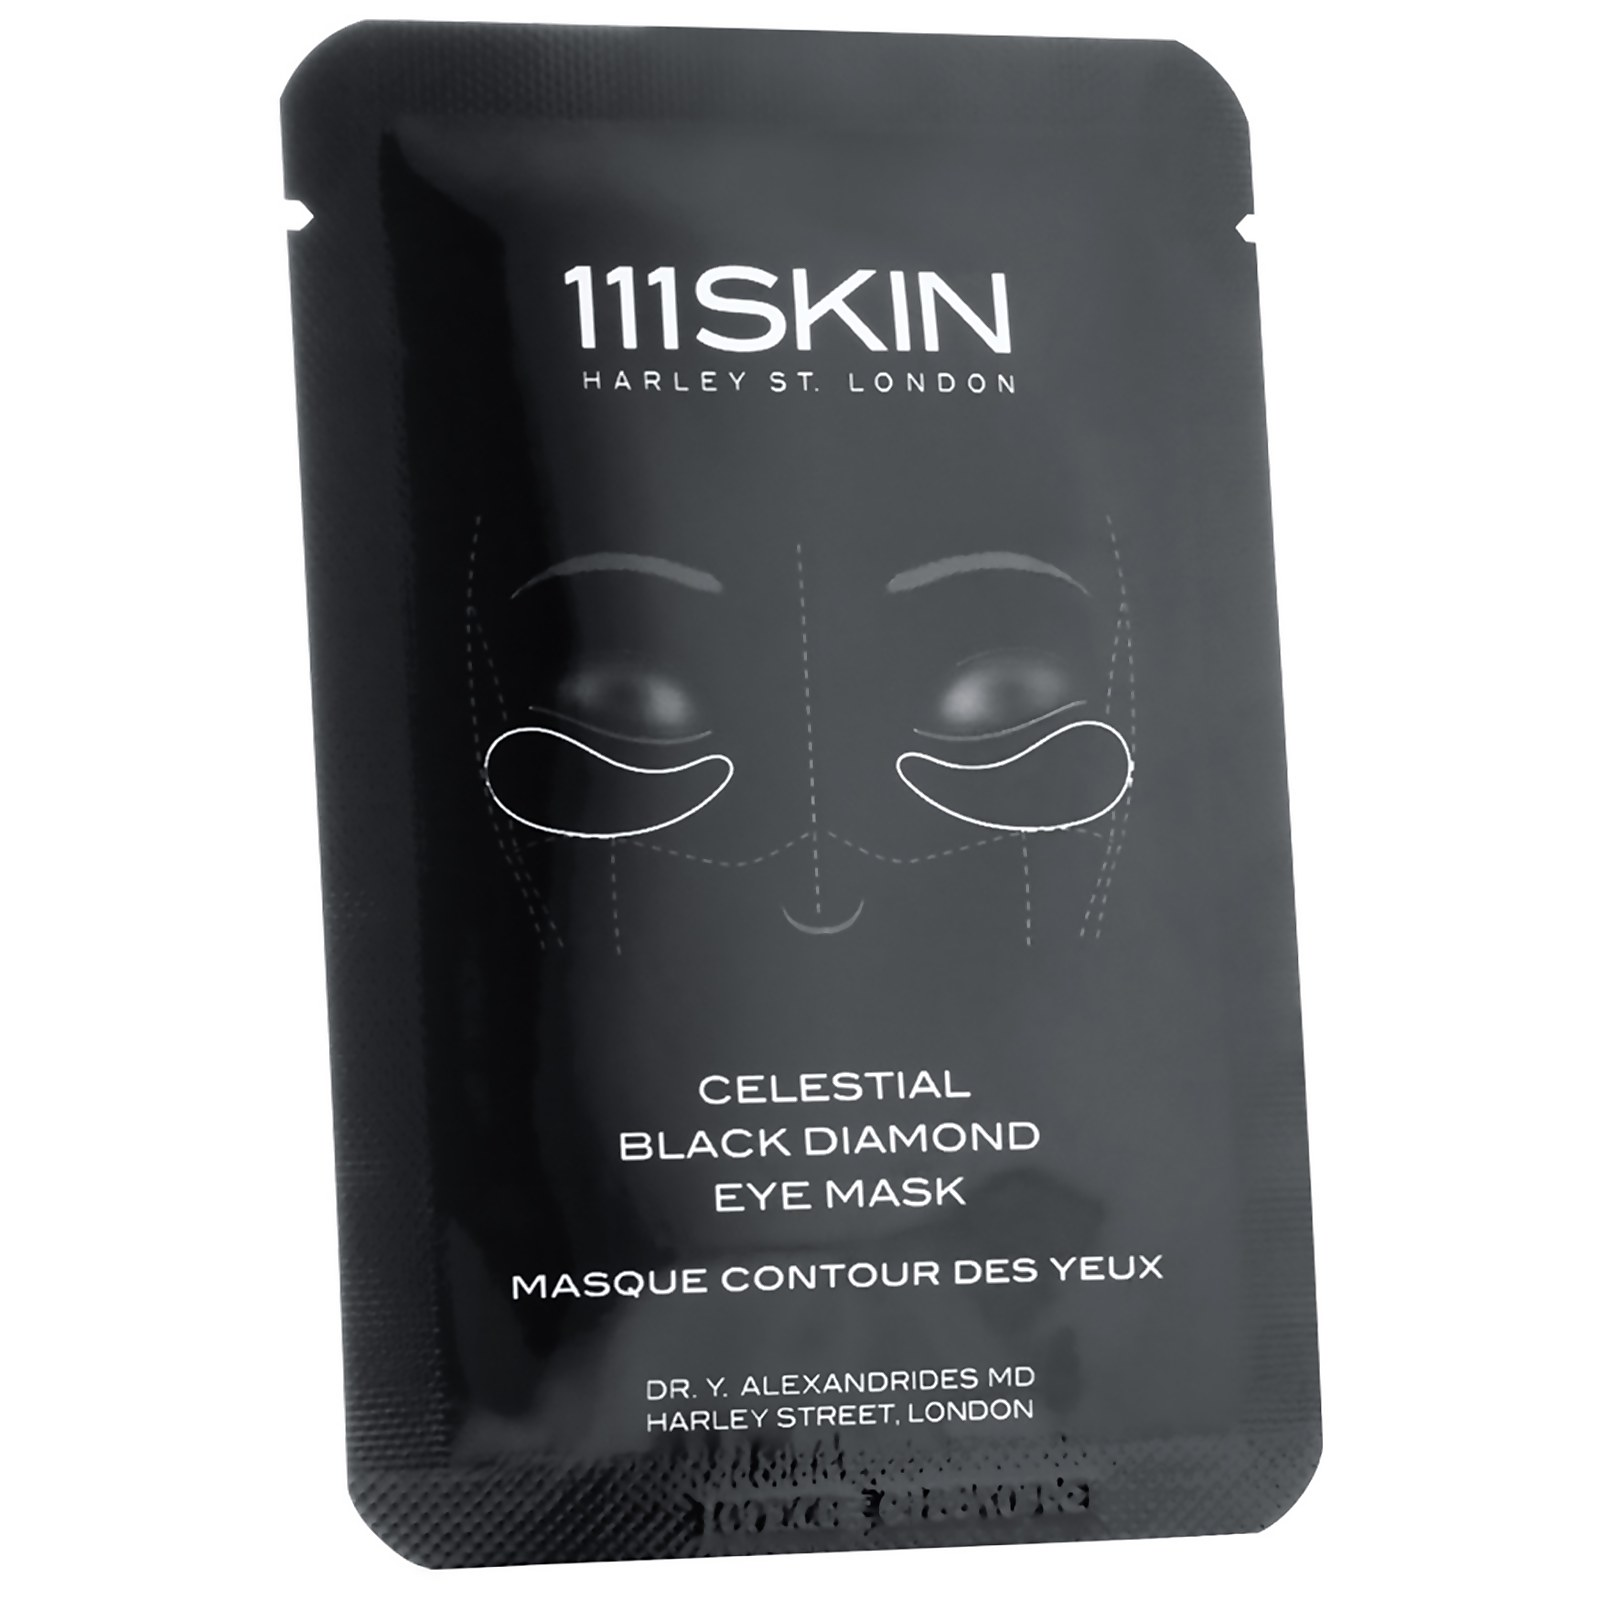 Купить 111SKIN Celestial Black Diamond Eye Mask